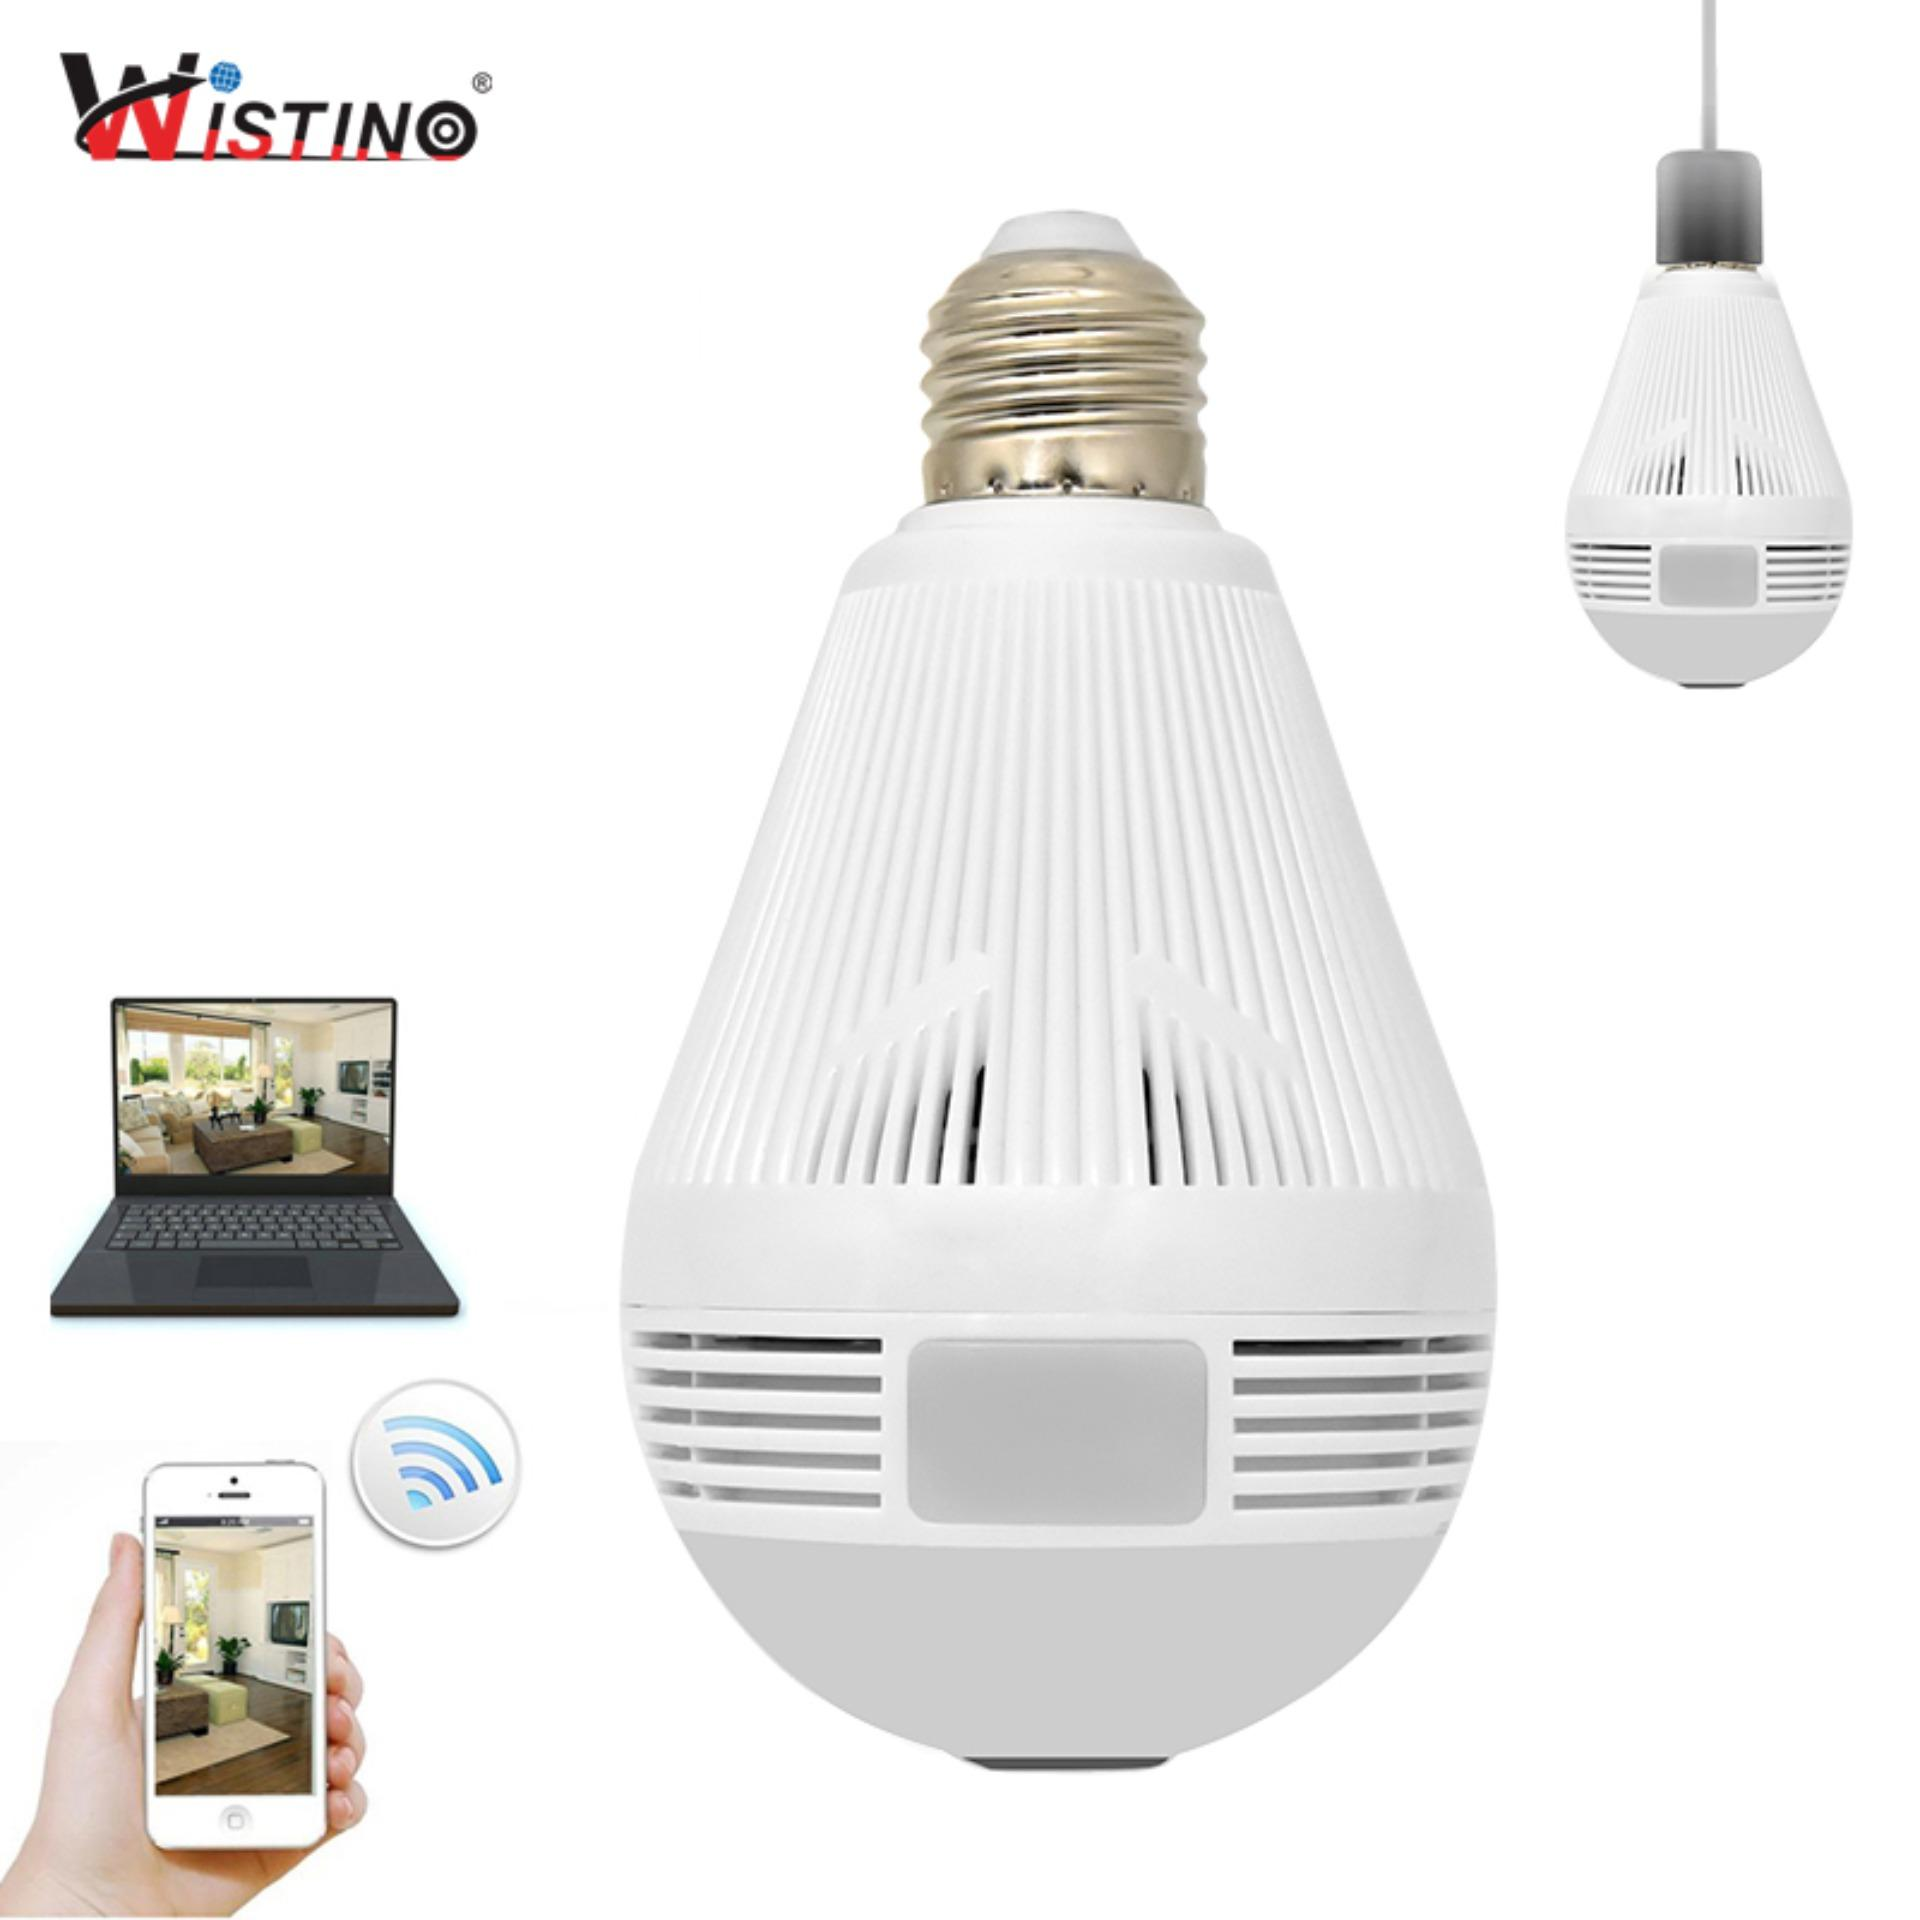 Wistino CCTV 960 P Wireless IP Kamera Bulb VR Panoramic Camera Light Wifi FishEye 360 Derajat Home Surveillance Security Monitor XMeye-Intl